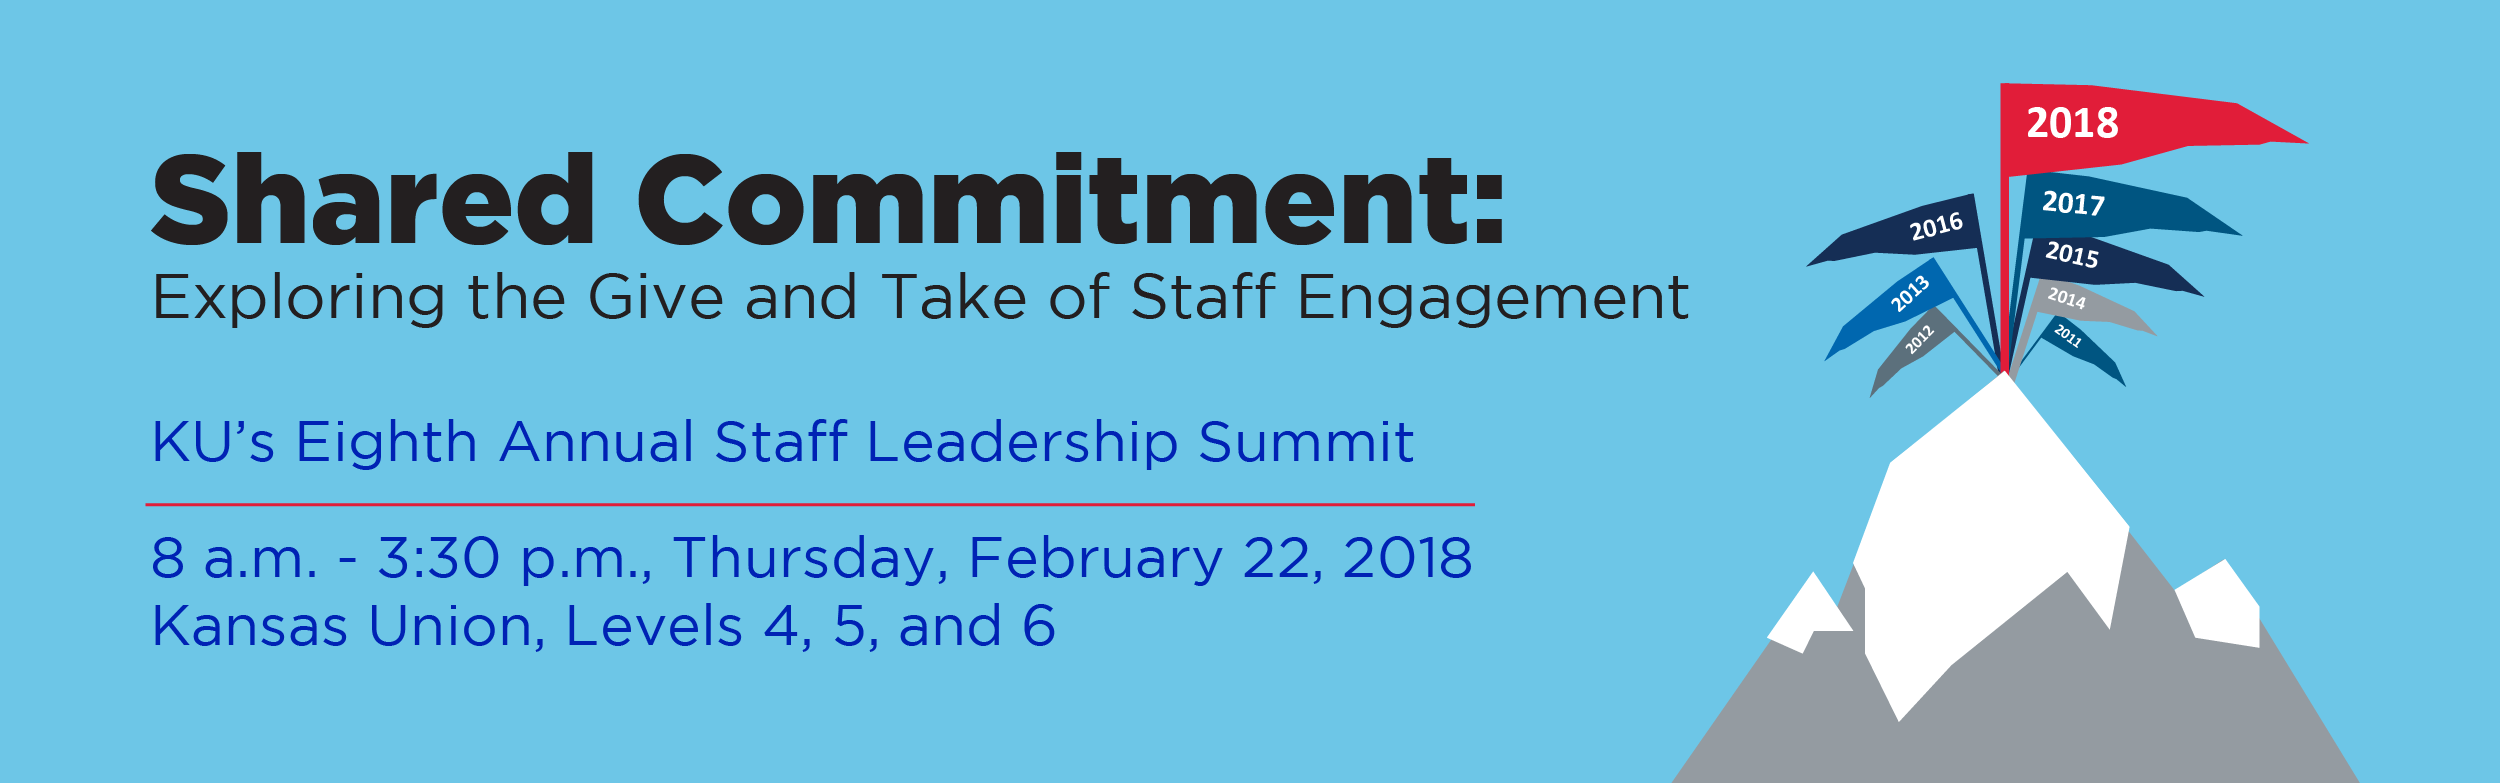 Staff Leadership Summit Logo. This photo includes the date of Thursday, February 22 and the time of 8:00am to 3:30pm